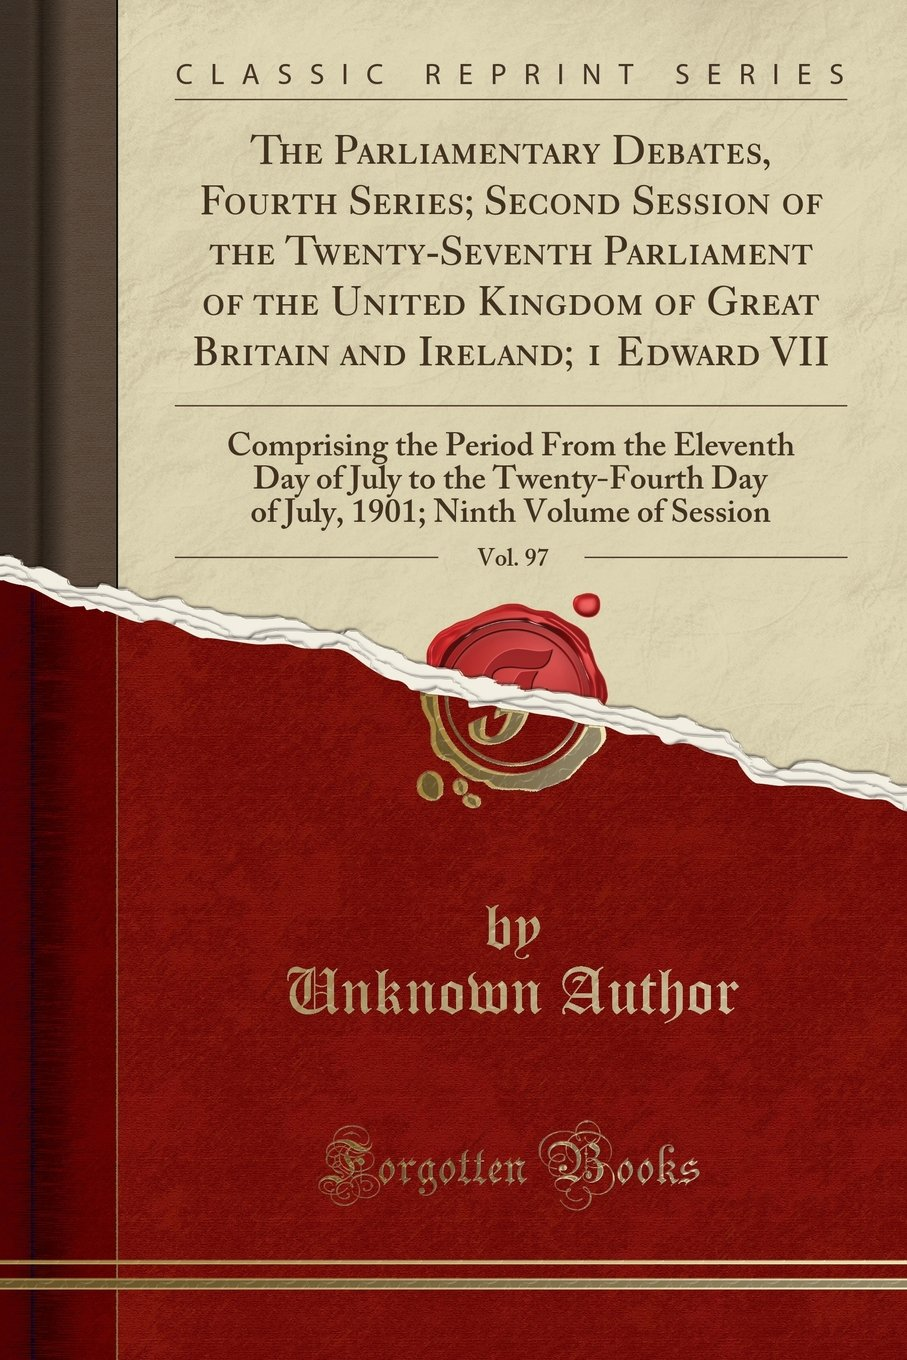 Download The Parliamentary Debates, Fourth Series; Second Session of the Twenty-Seventh Parliament of the United Kingdom of Great Britain and Ireland; 1 Edward ... July to the Twenty-Fourth Day of July, 1901 pdf